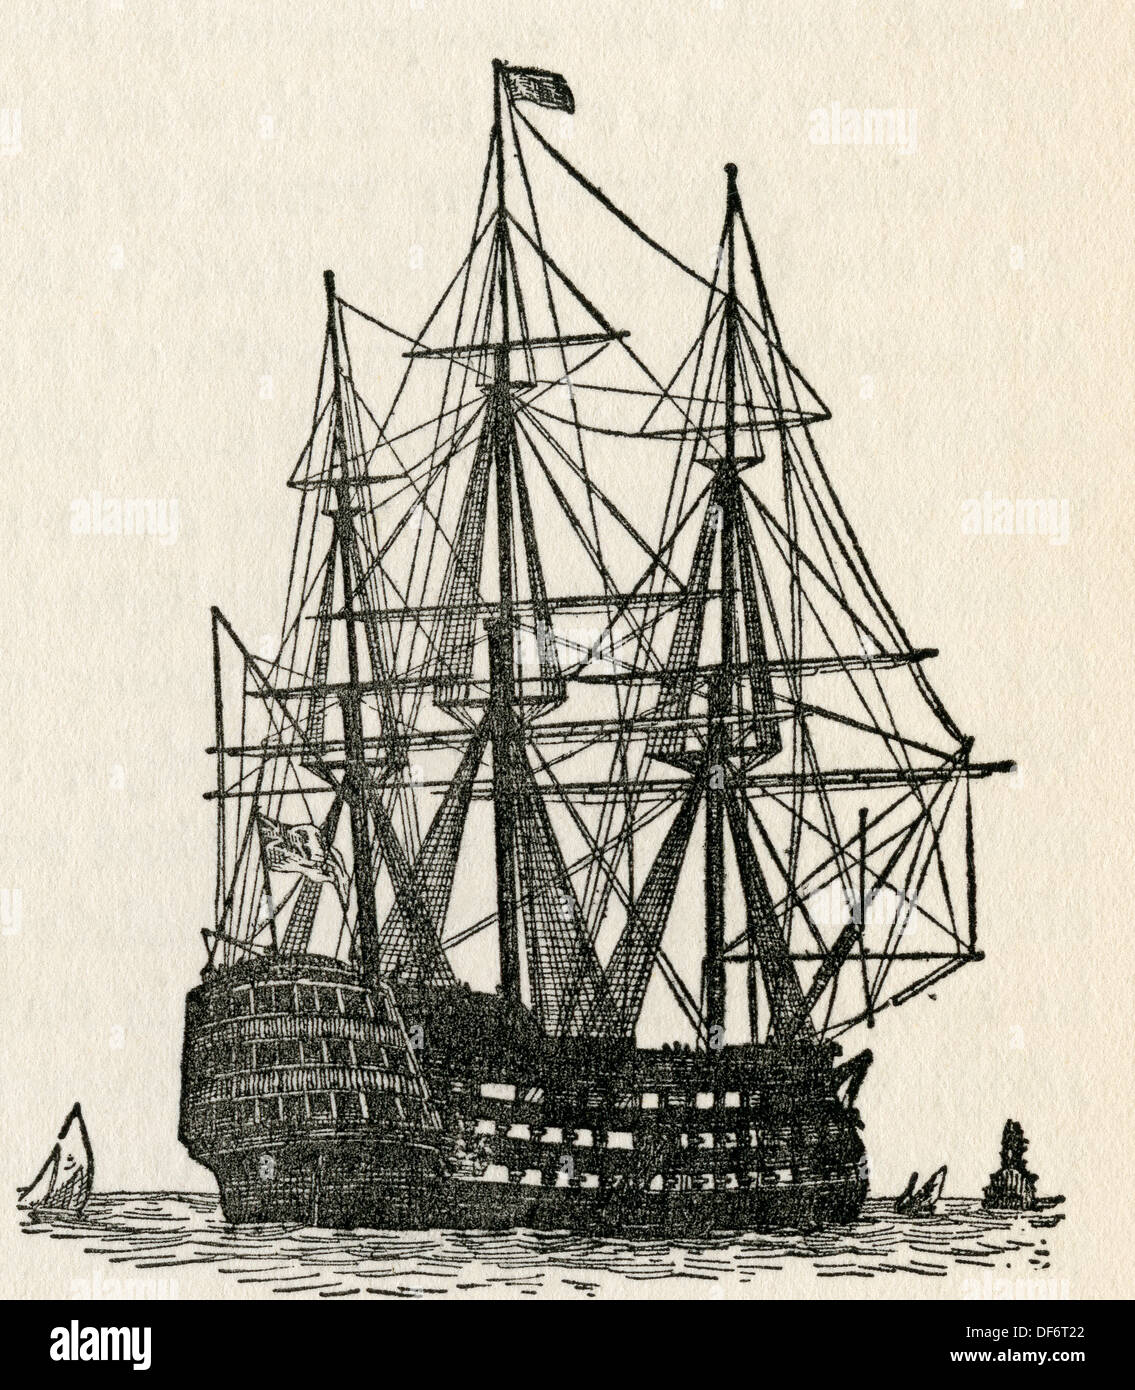 HMS Victory, Lord Nelson's flagship at the Battle of Trafalgar in 1805. From The Romance of the Merchant Ship, published Stock Photo